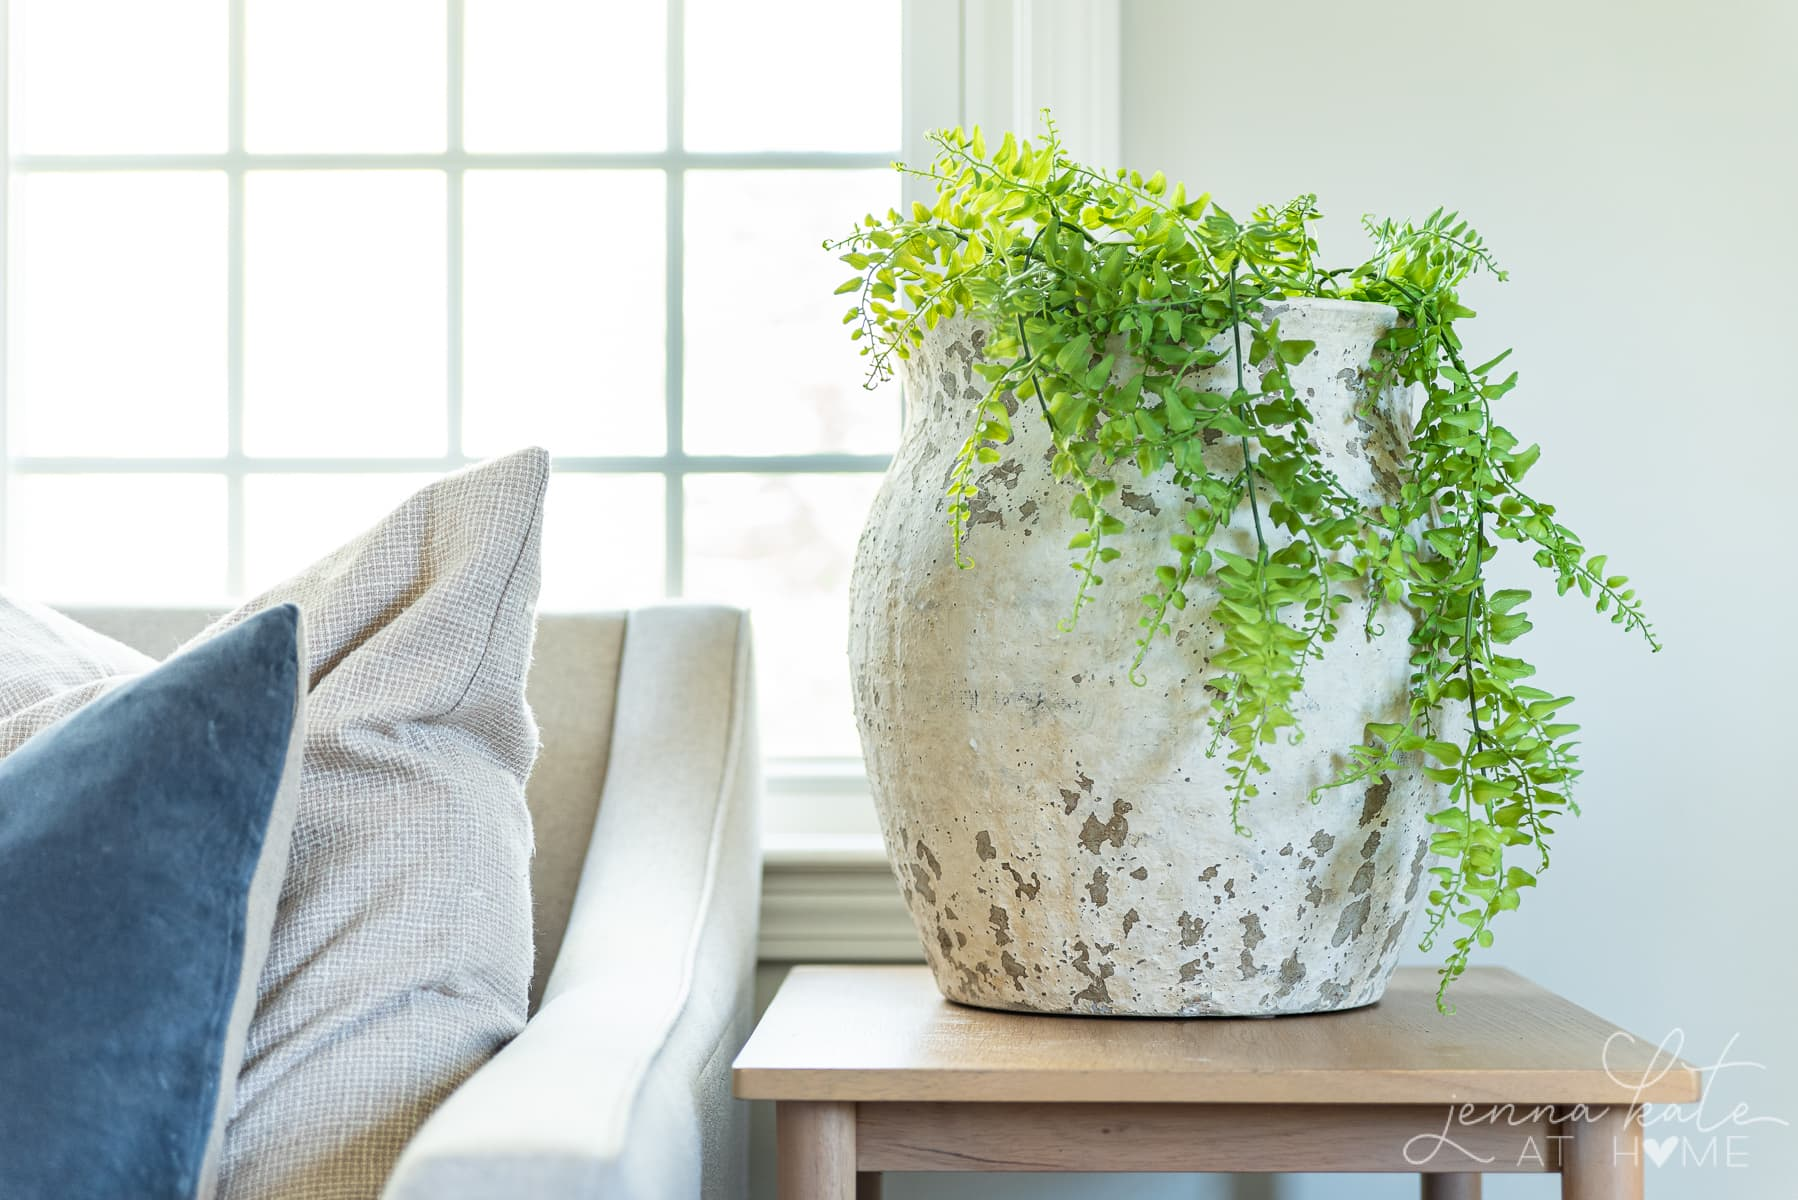 living room side table with a large oversized vase with trailing green plant